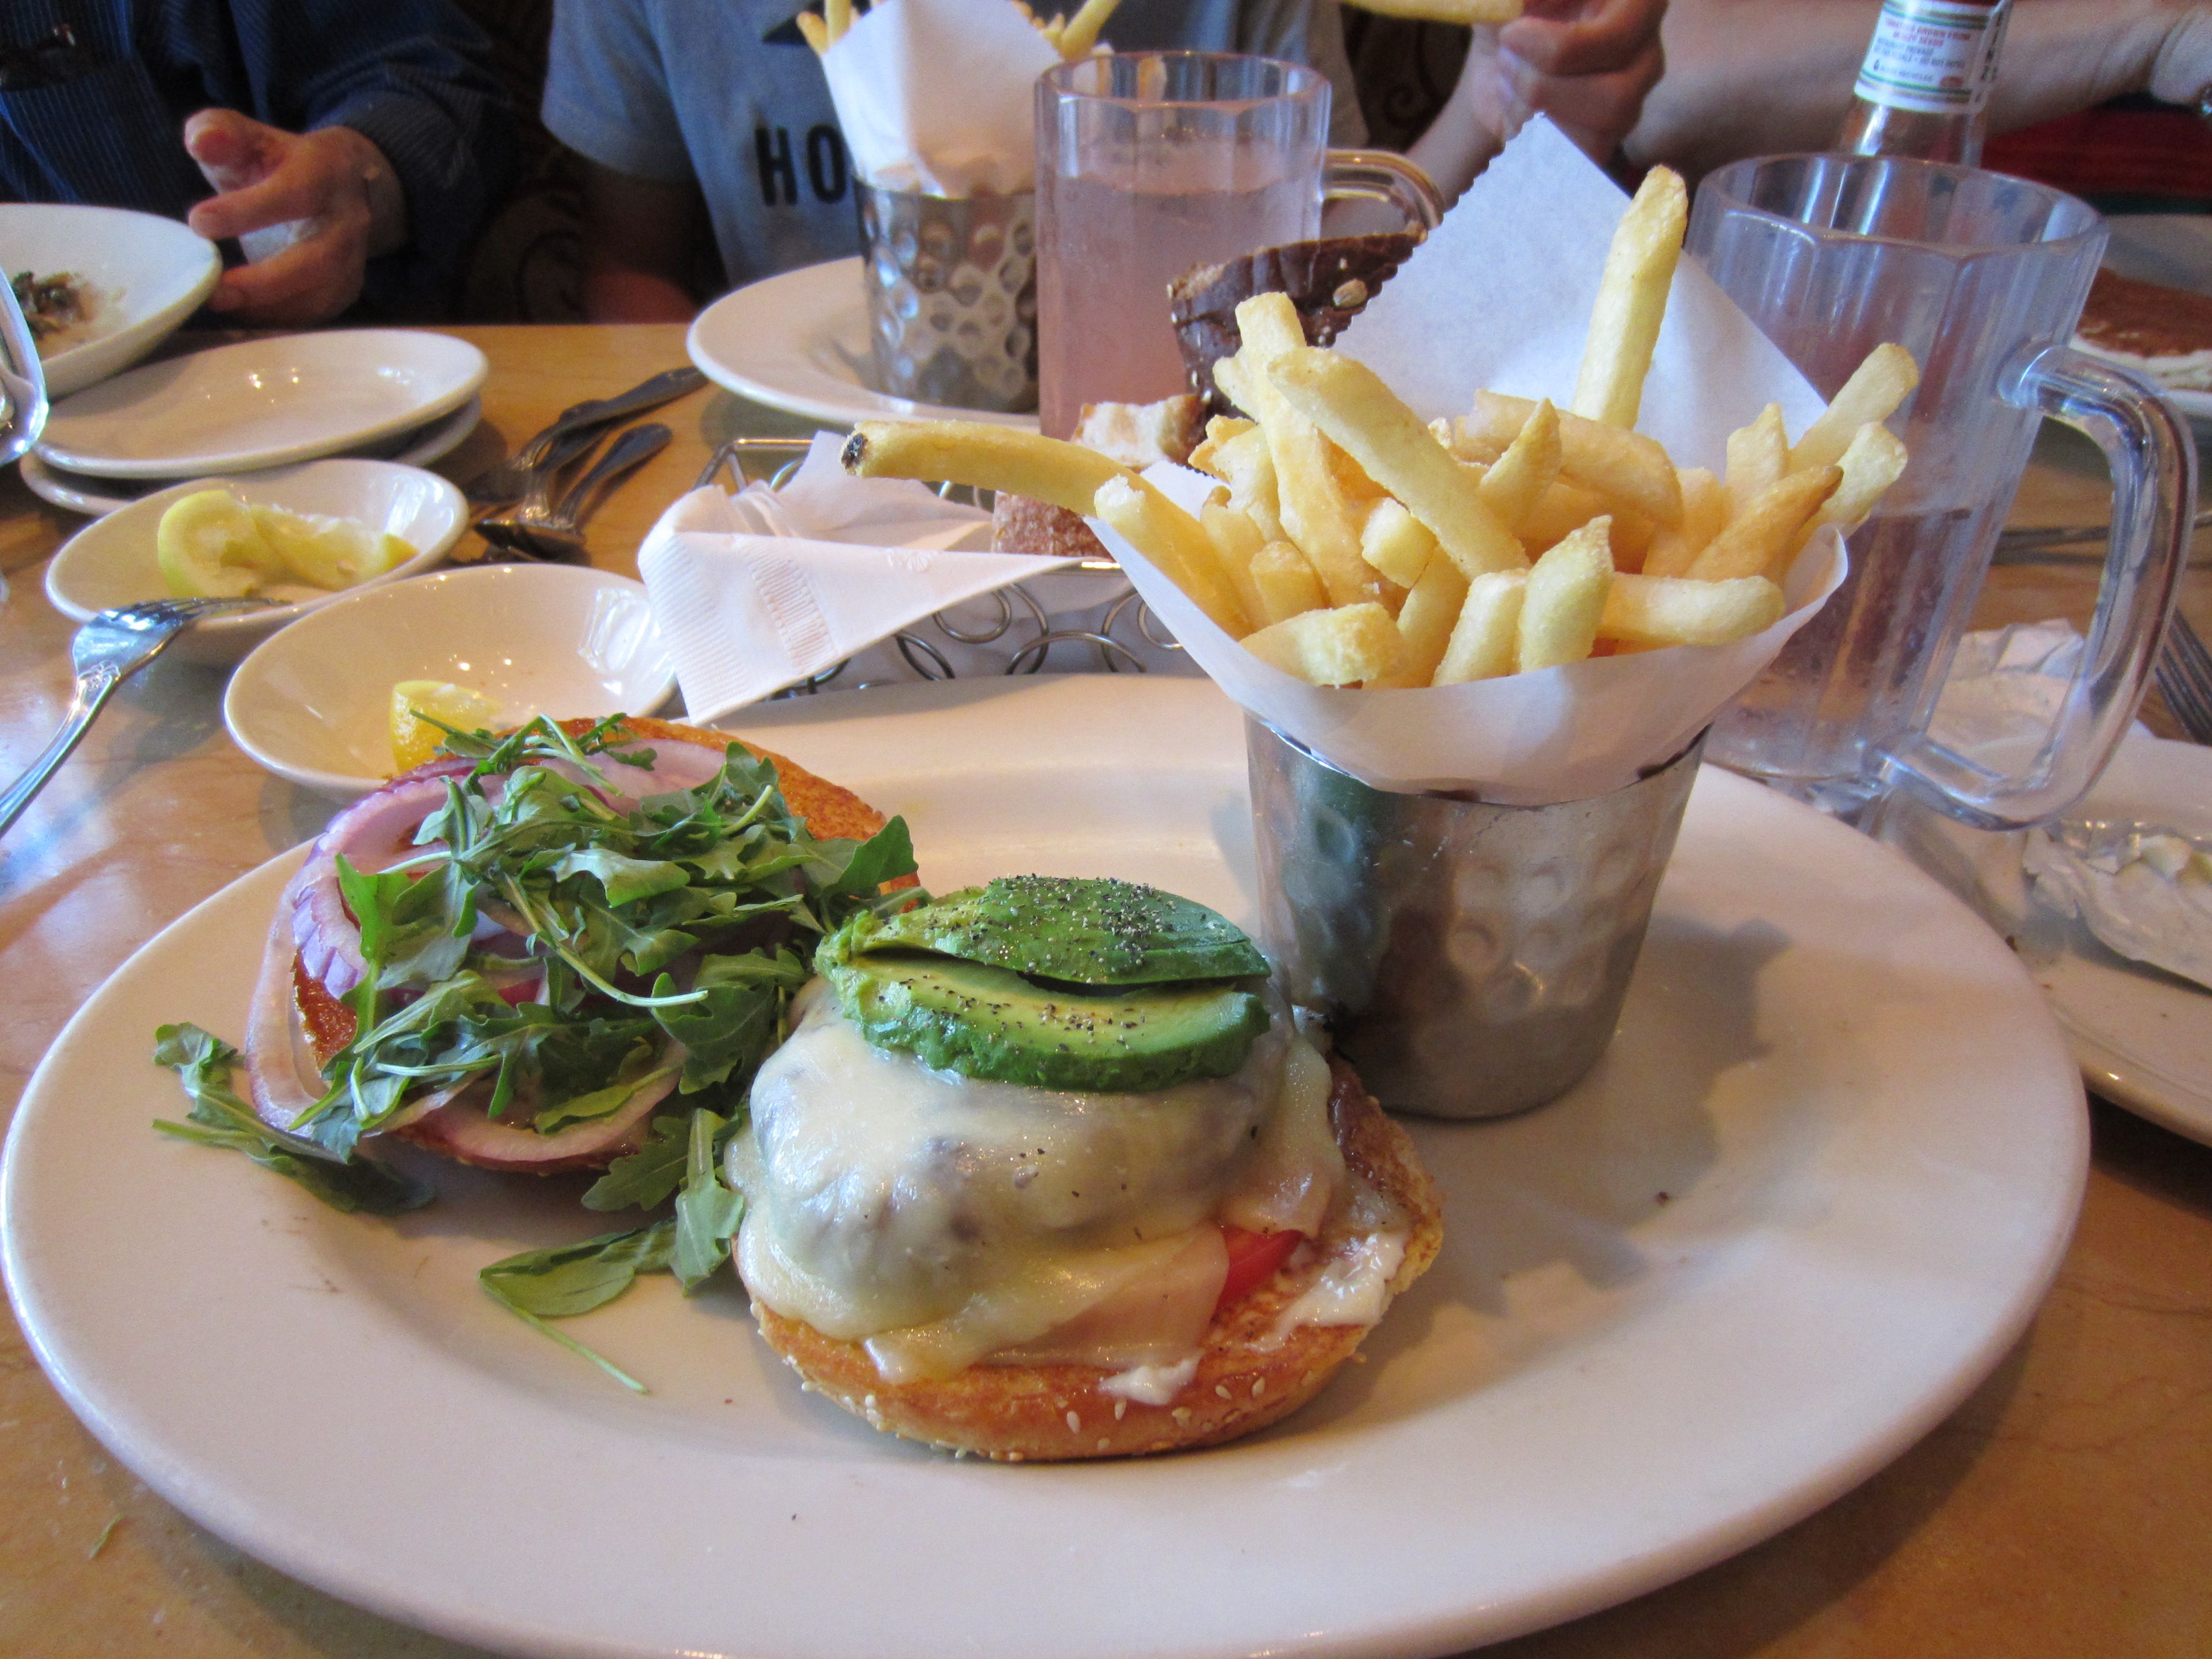 Lunch at Cheesecake factory. Dis is the Monterey Cheddar Burger